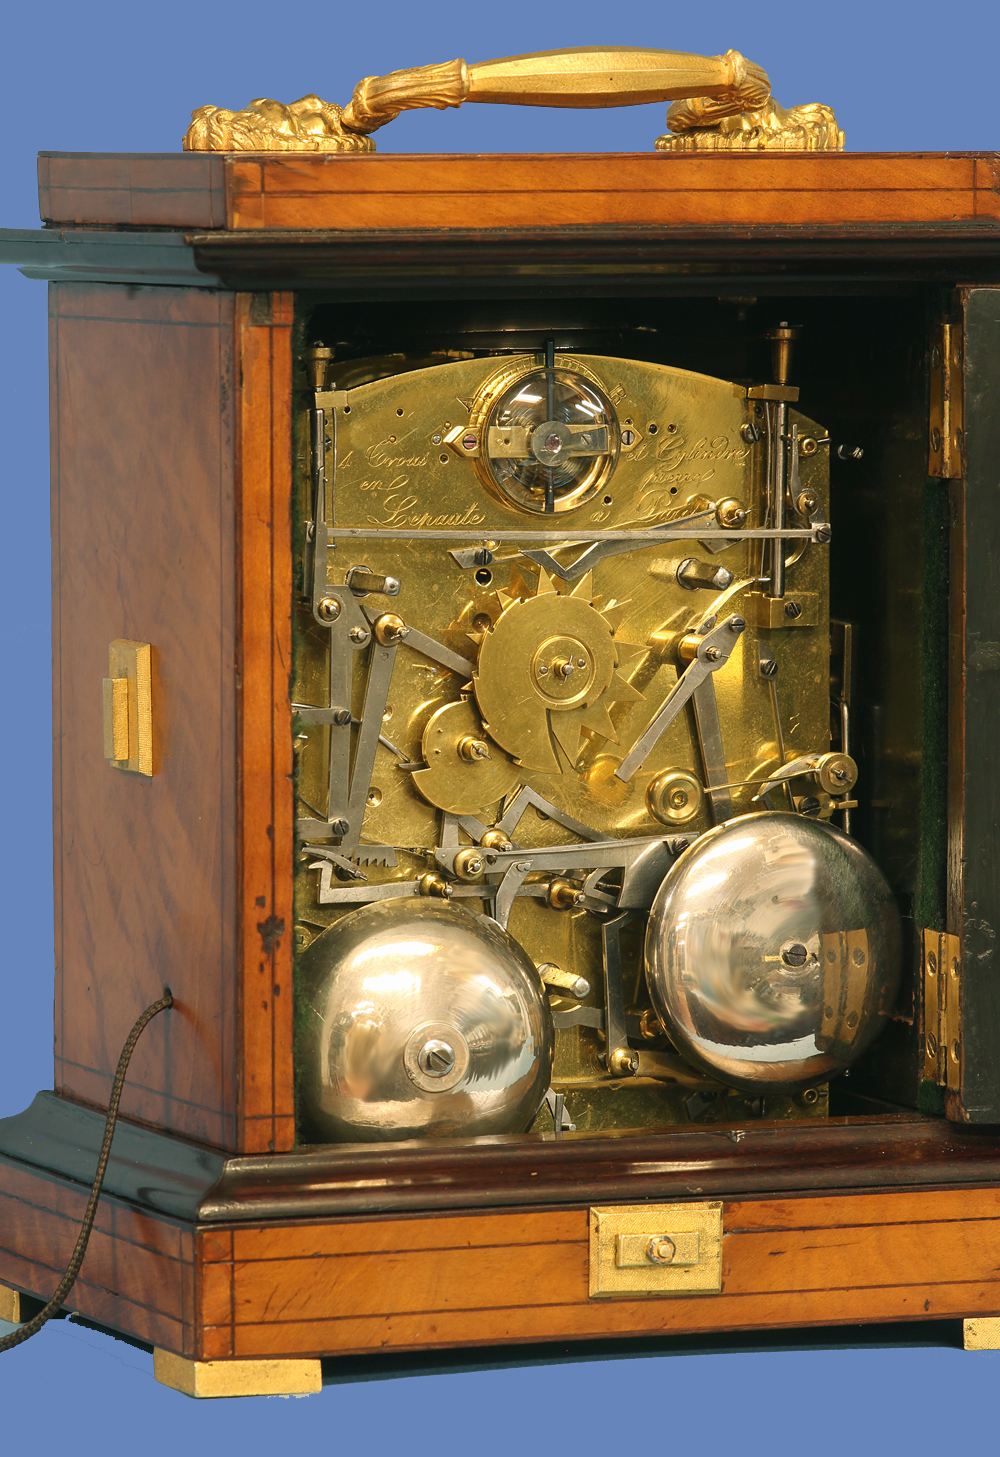 Early 19th Century Grande-Sonnerie Carriage Clock by Lepaute.